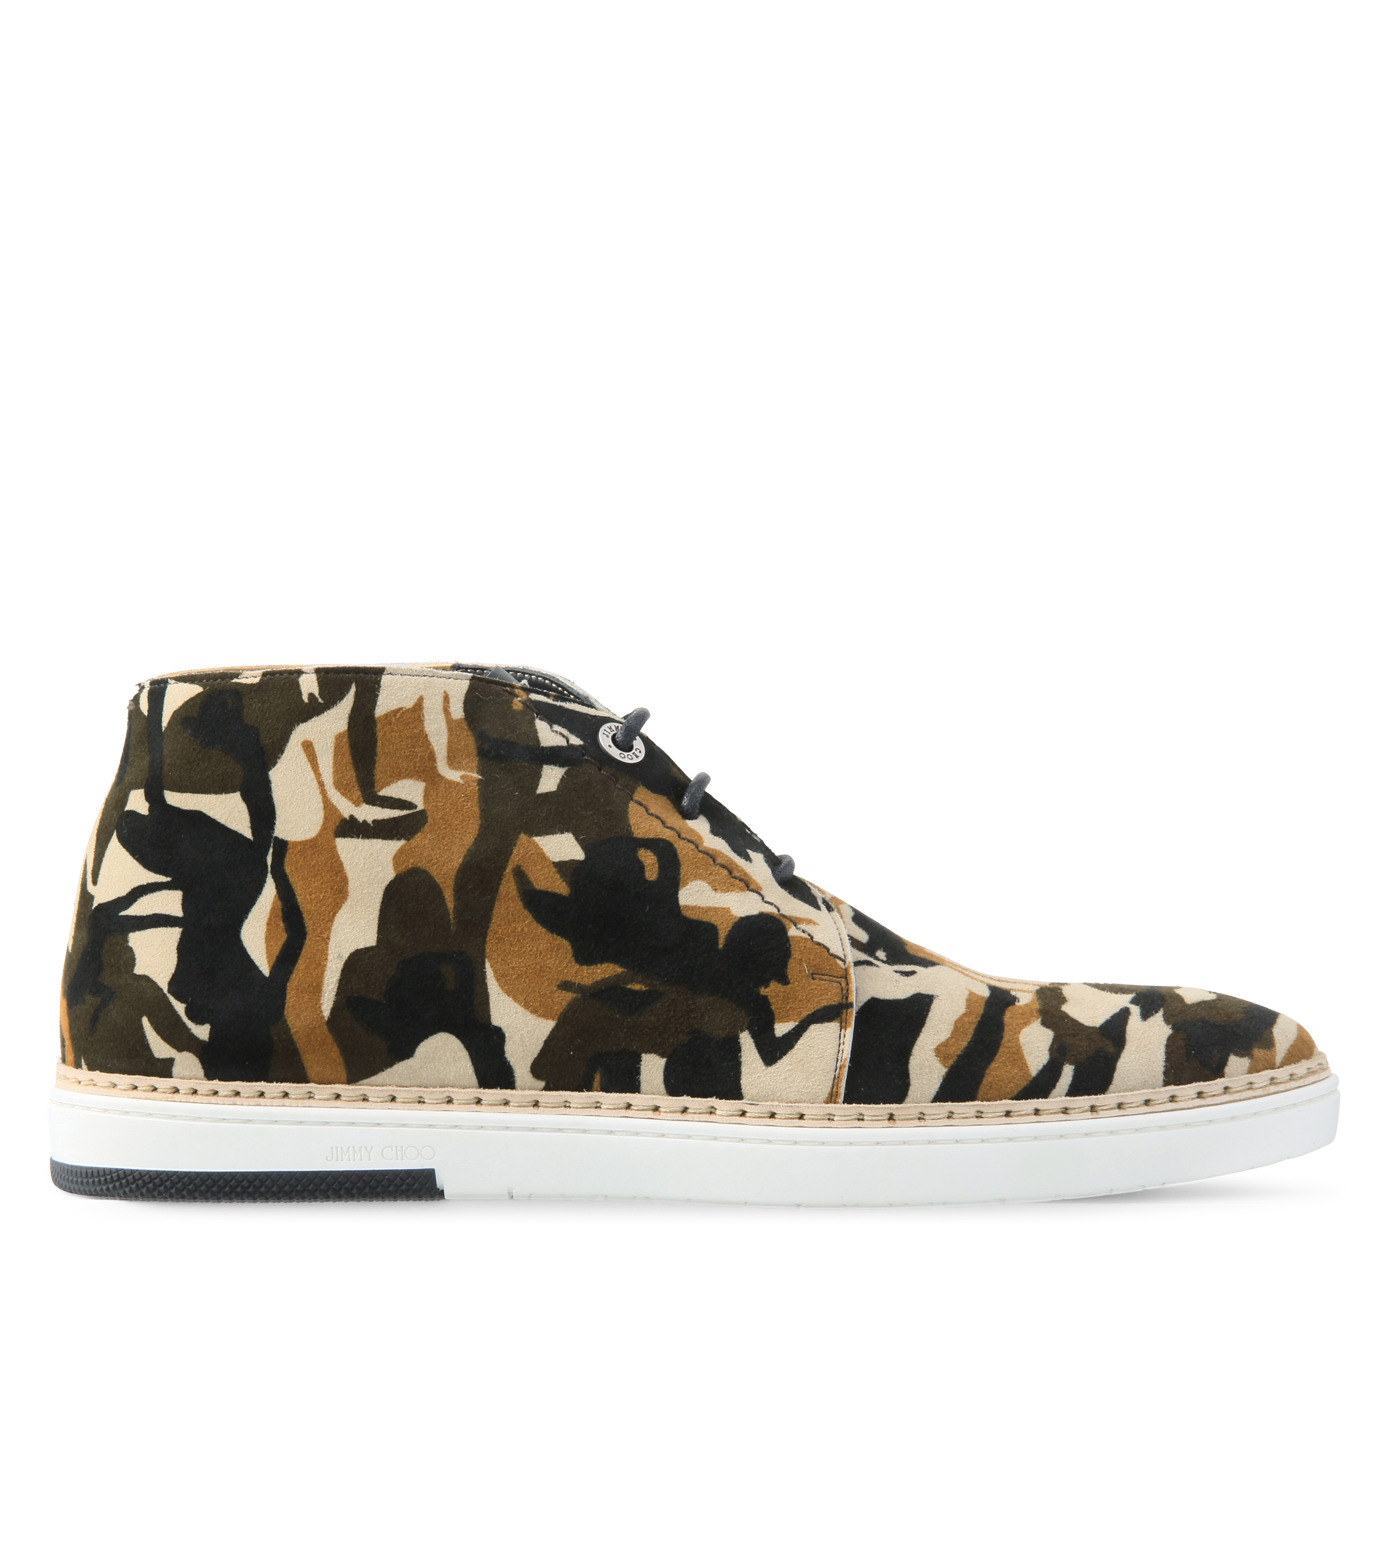 Jimmy Choo(ジミーチュウ)のCamo print desert boots-LIGHT BROWN-DRAKE-CPD-41 拡大詳細画像1